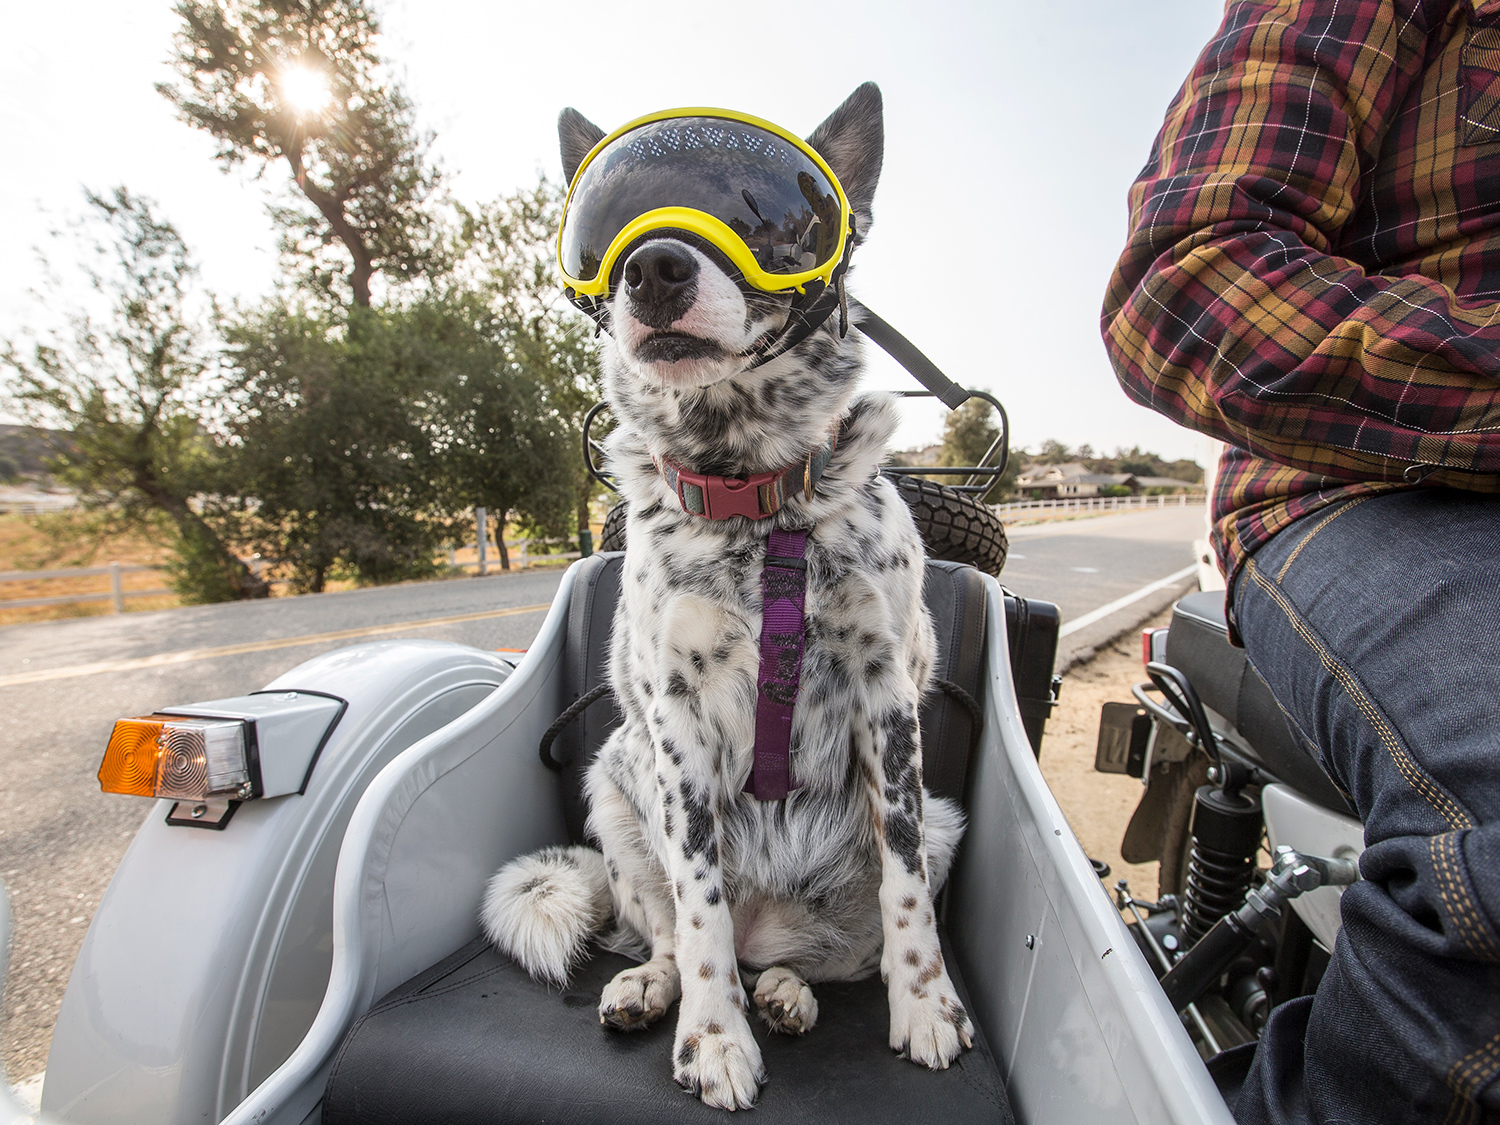 Gracie is an Australian Cattle Dog that loves going for rides in the Ural sidecar with her companion Justin